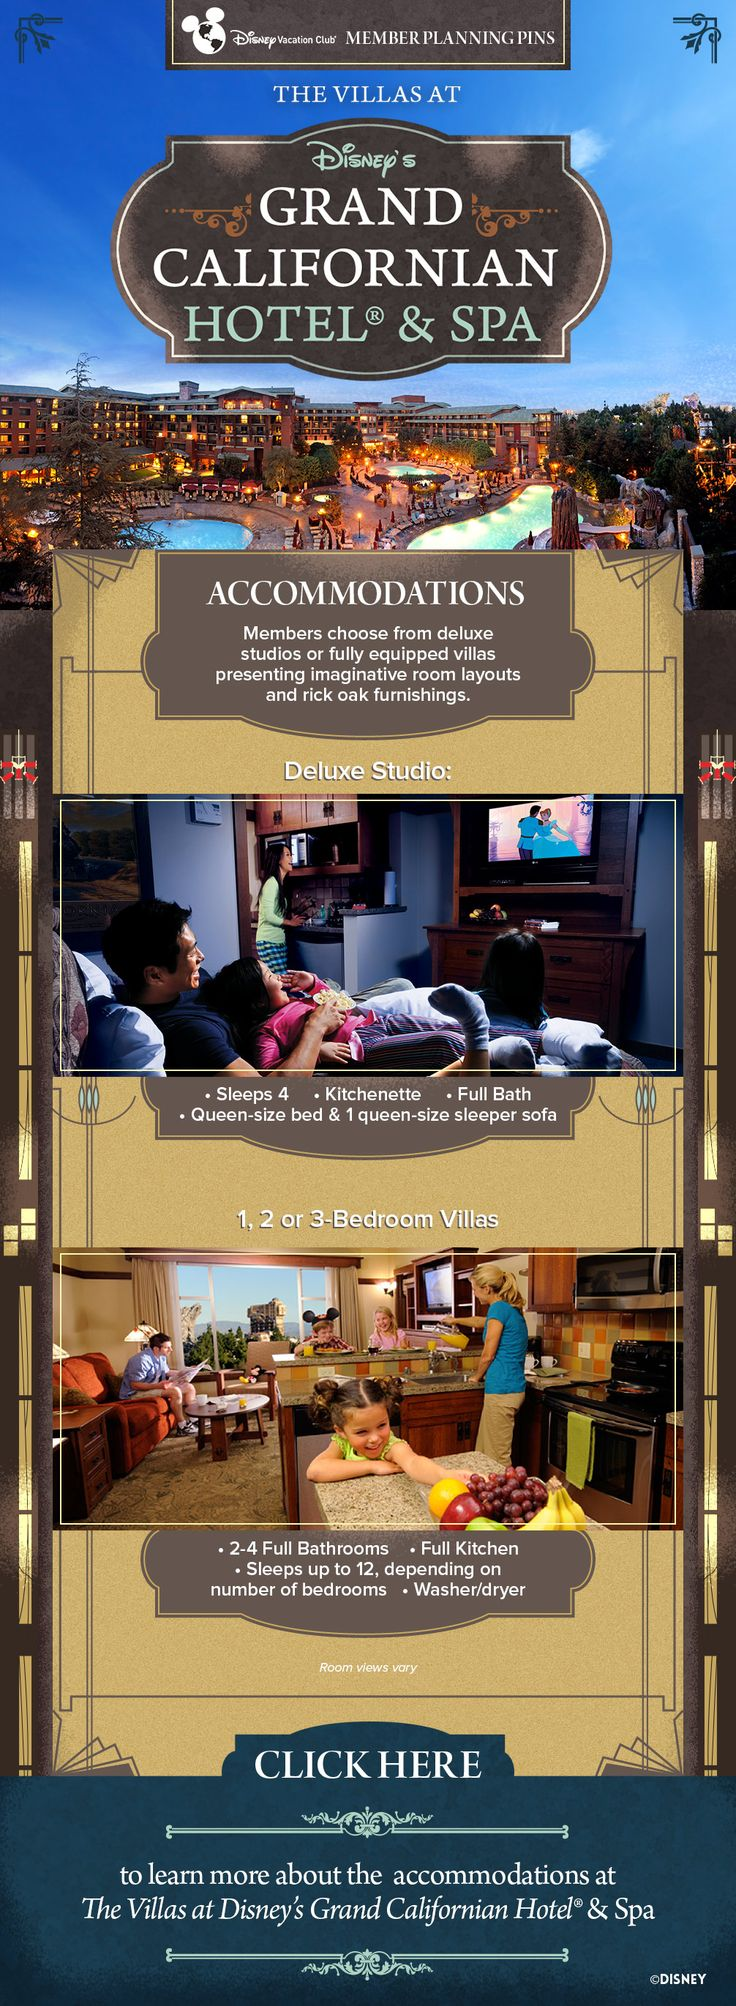 17 Best Images About Disney Vacation Club Resorts On Pinterest Disney Resorts And The Florida